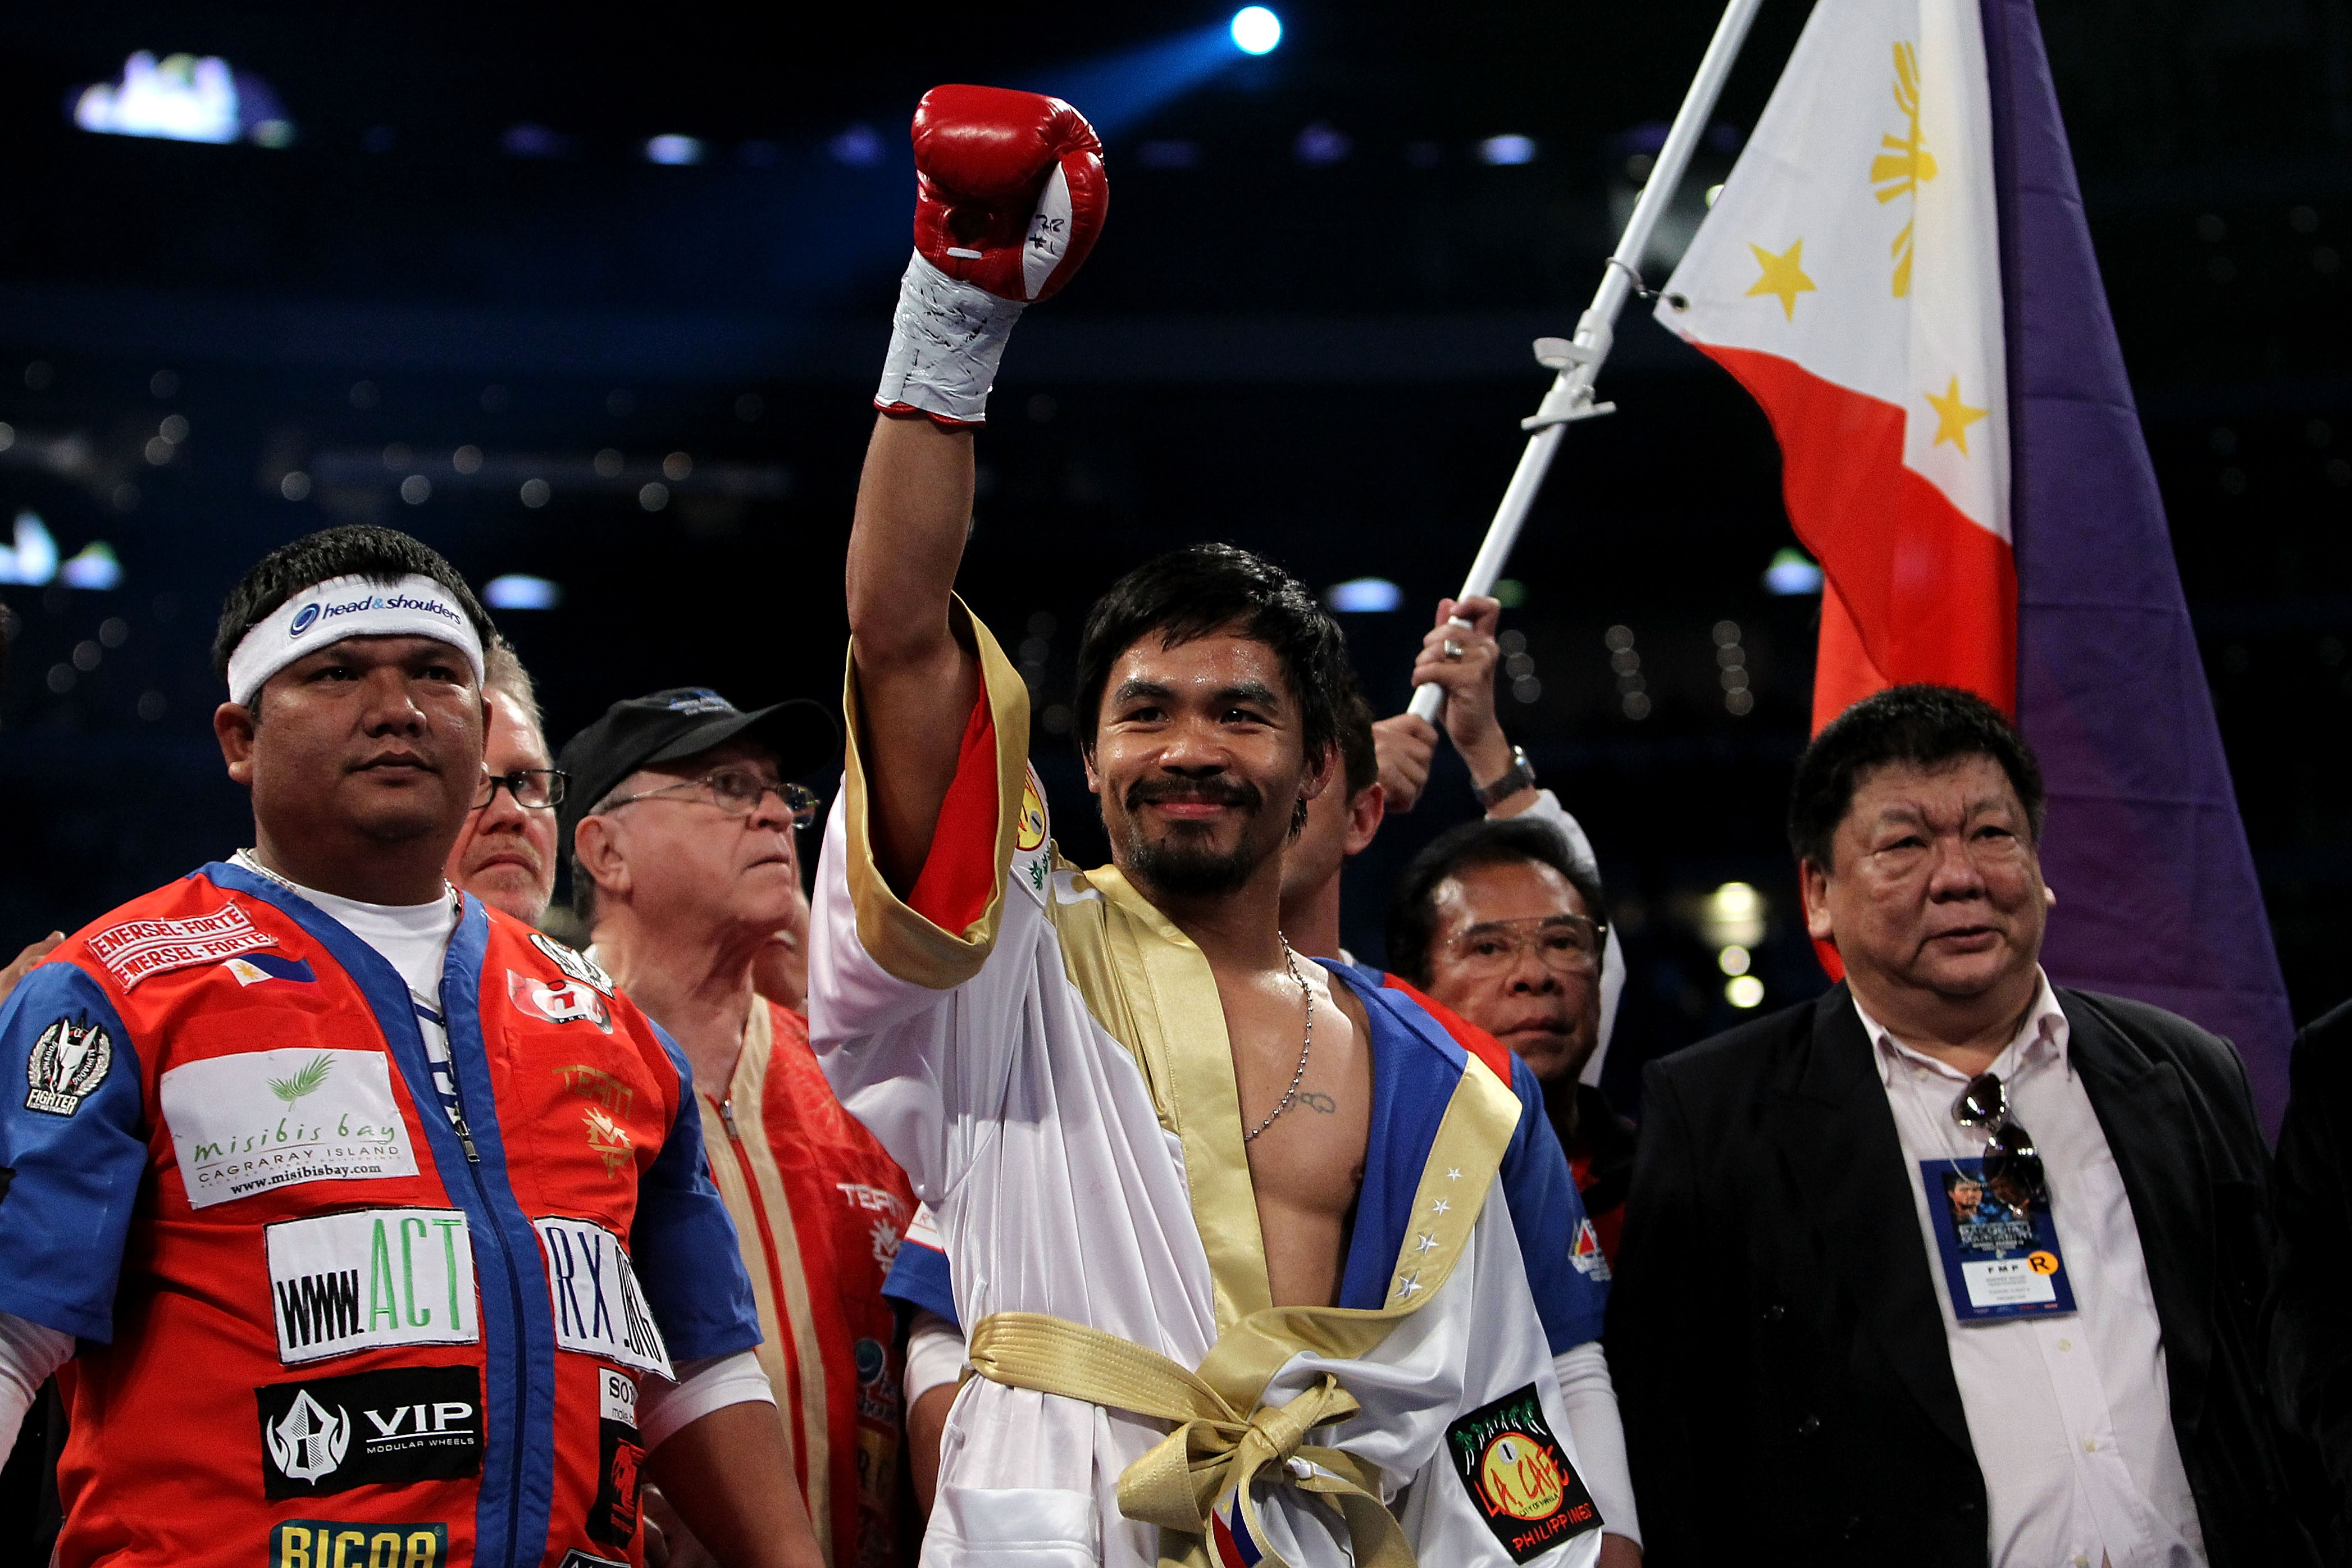 ARLINGTON, TX - NOVEMBER 13:  Manny Pacquiao (white trunks) of the Philippines raises his hand in the air as he stands in the ring waiting to fight against Antonio Margarito (black trunks) of Mexico during their WBC World Super Welterweight Title bout at